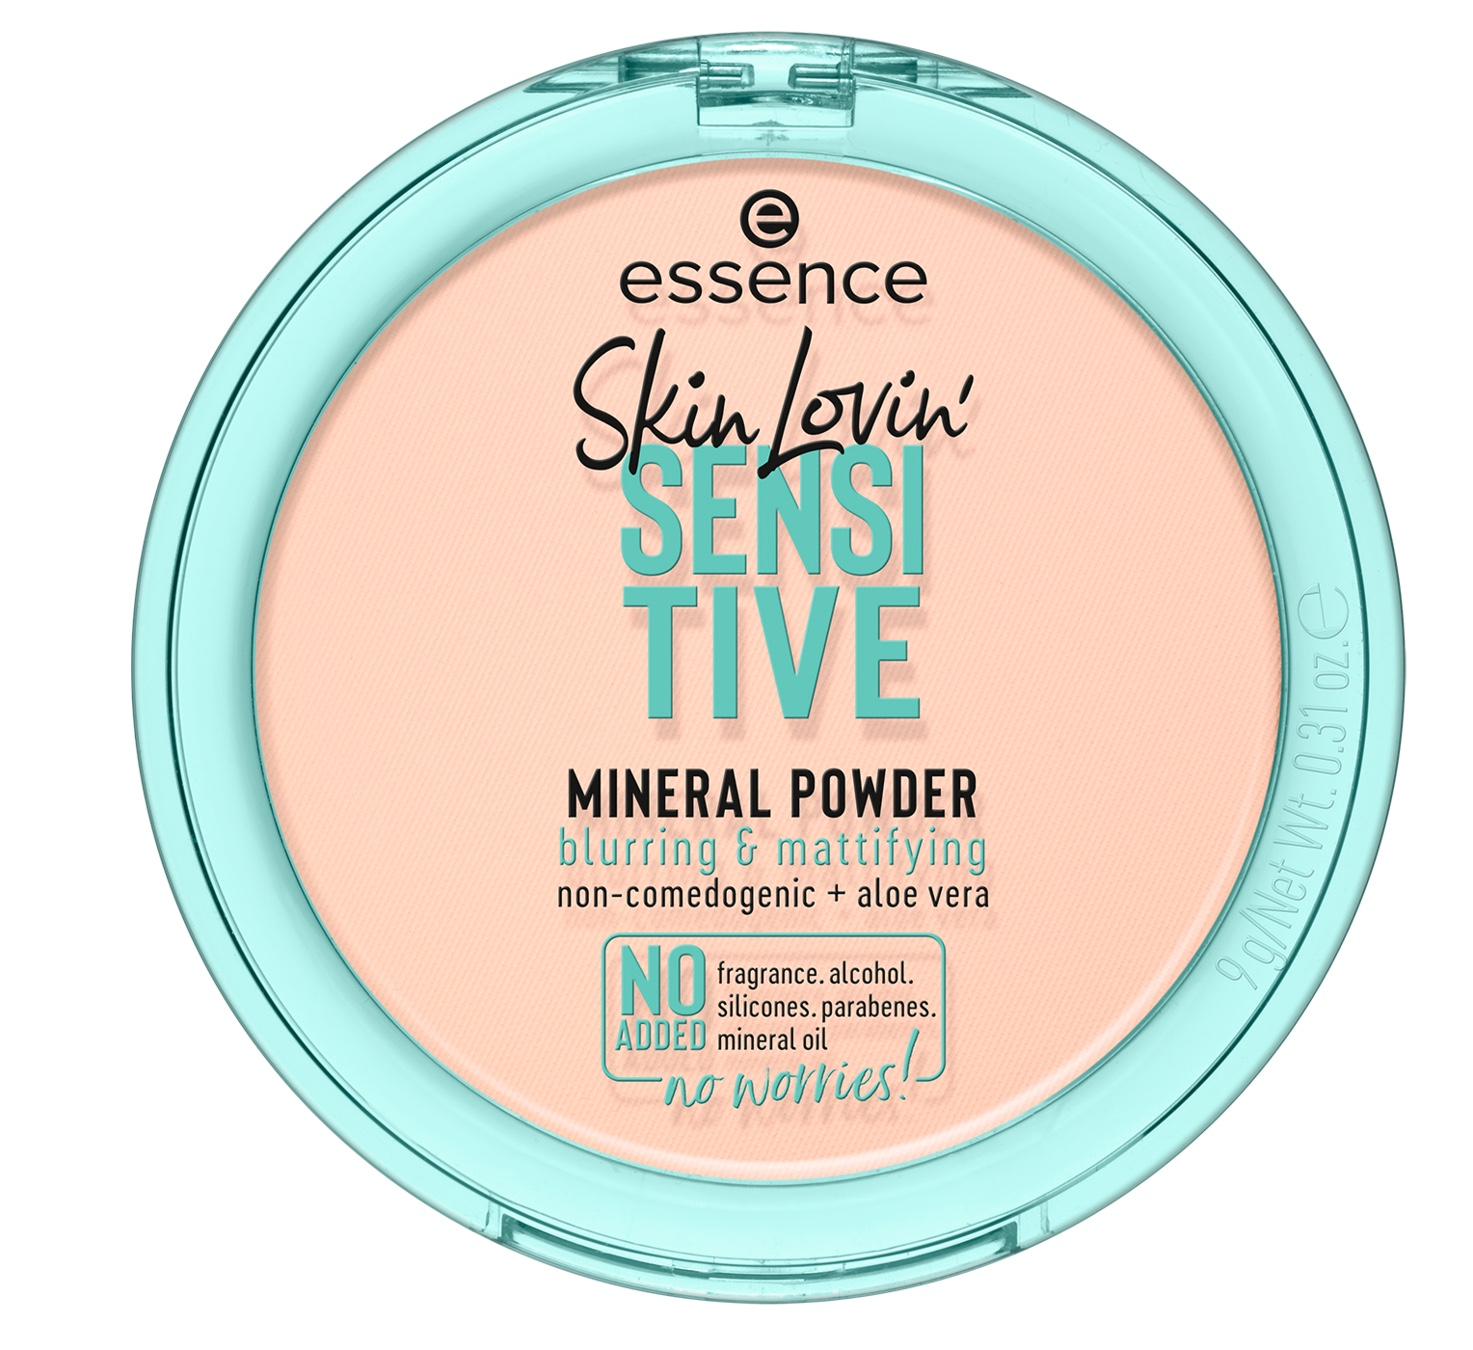 essence Skin Lovin' SENSITIVE MINERAL POWDER